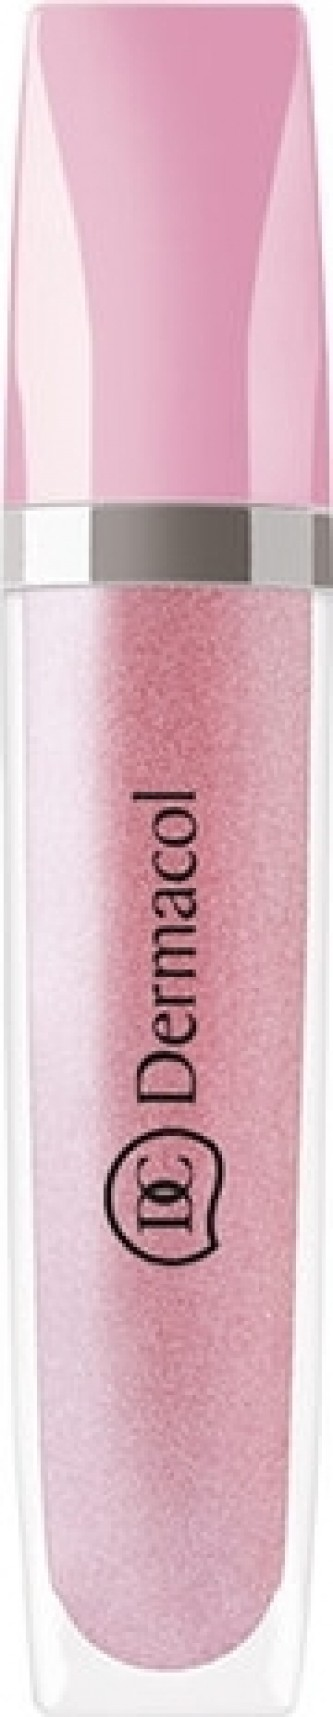 Dermacol Shimmering Lip Gloss 8 ml 2